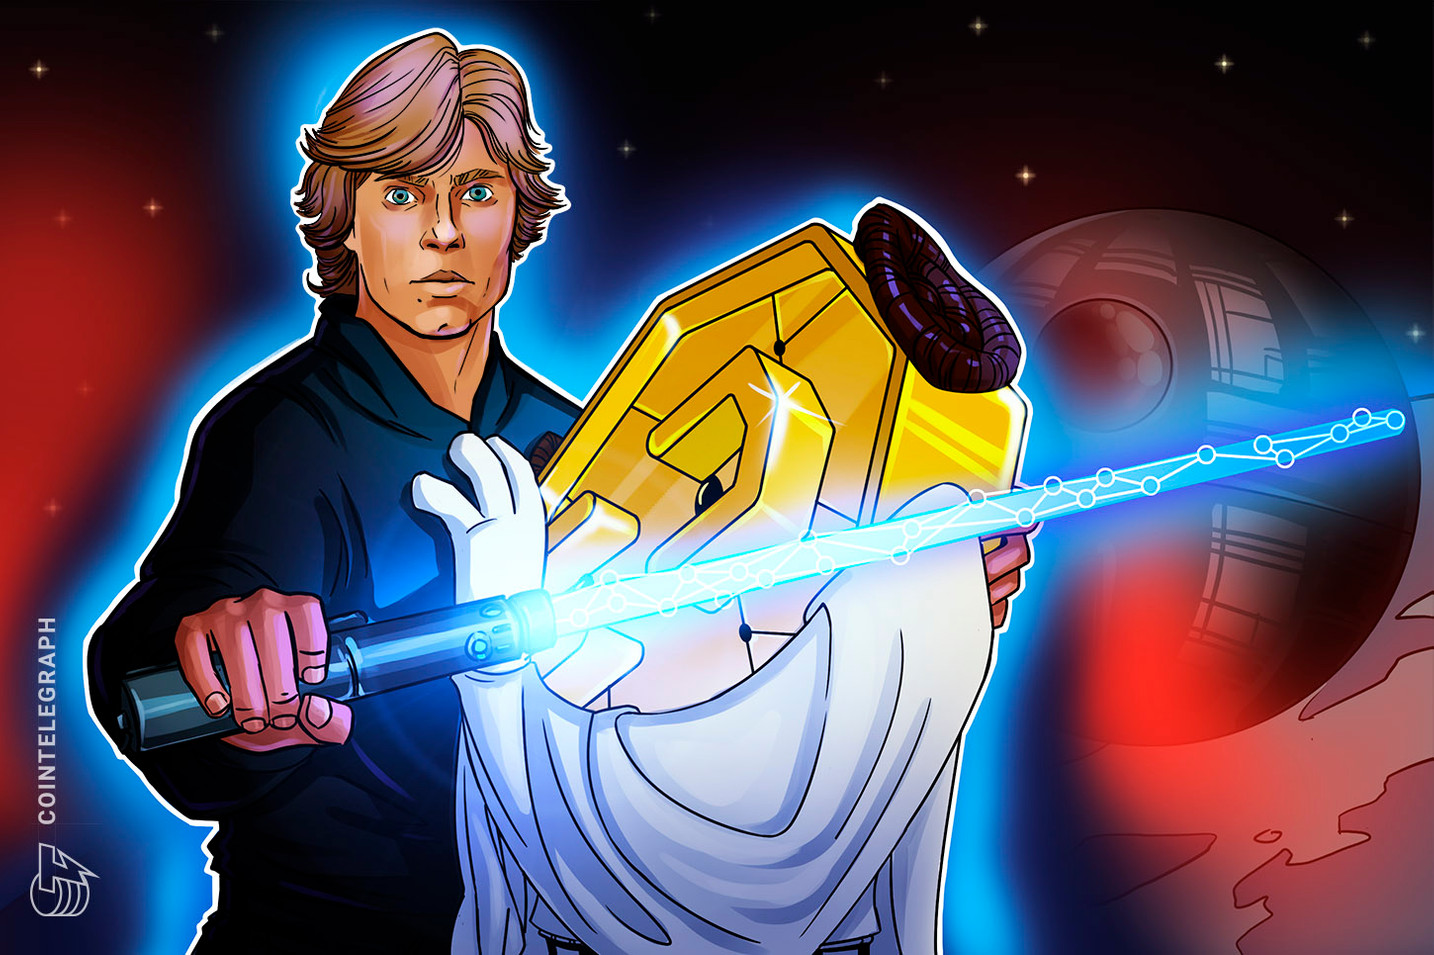 May the 4th be with you: StarColl debuts unofficial Star Wars NFT collection